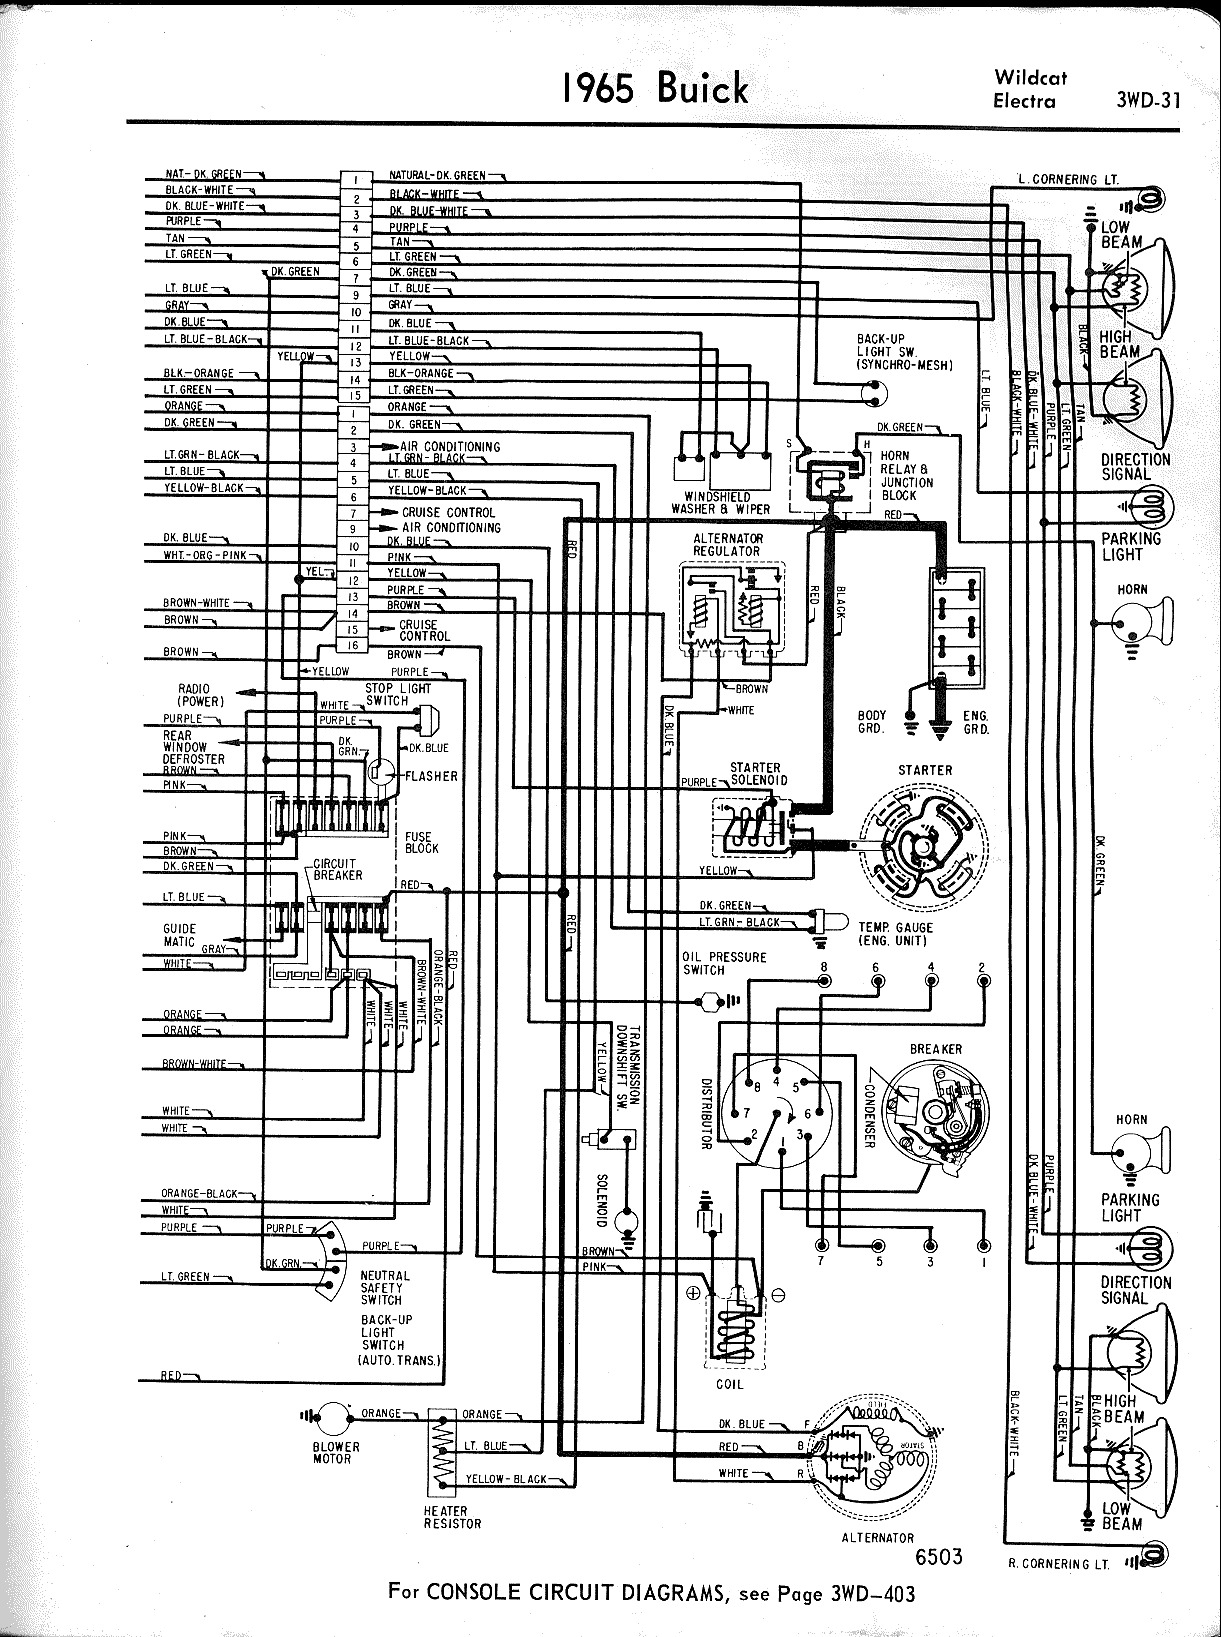 1970 Buick Gs Wiring Diagram Fluorescent Fixture Wiring Diagram For Wiring Diagram Schematics